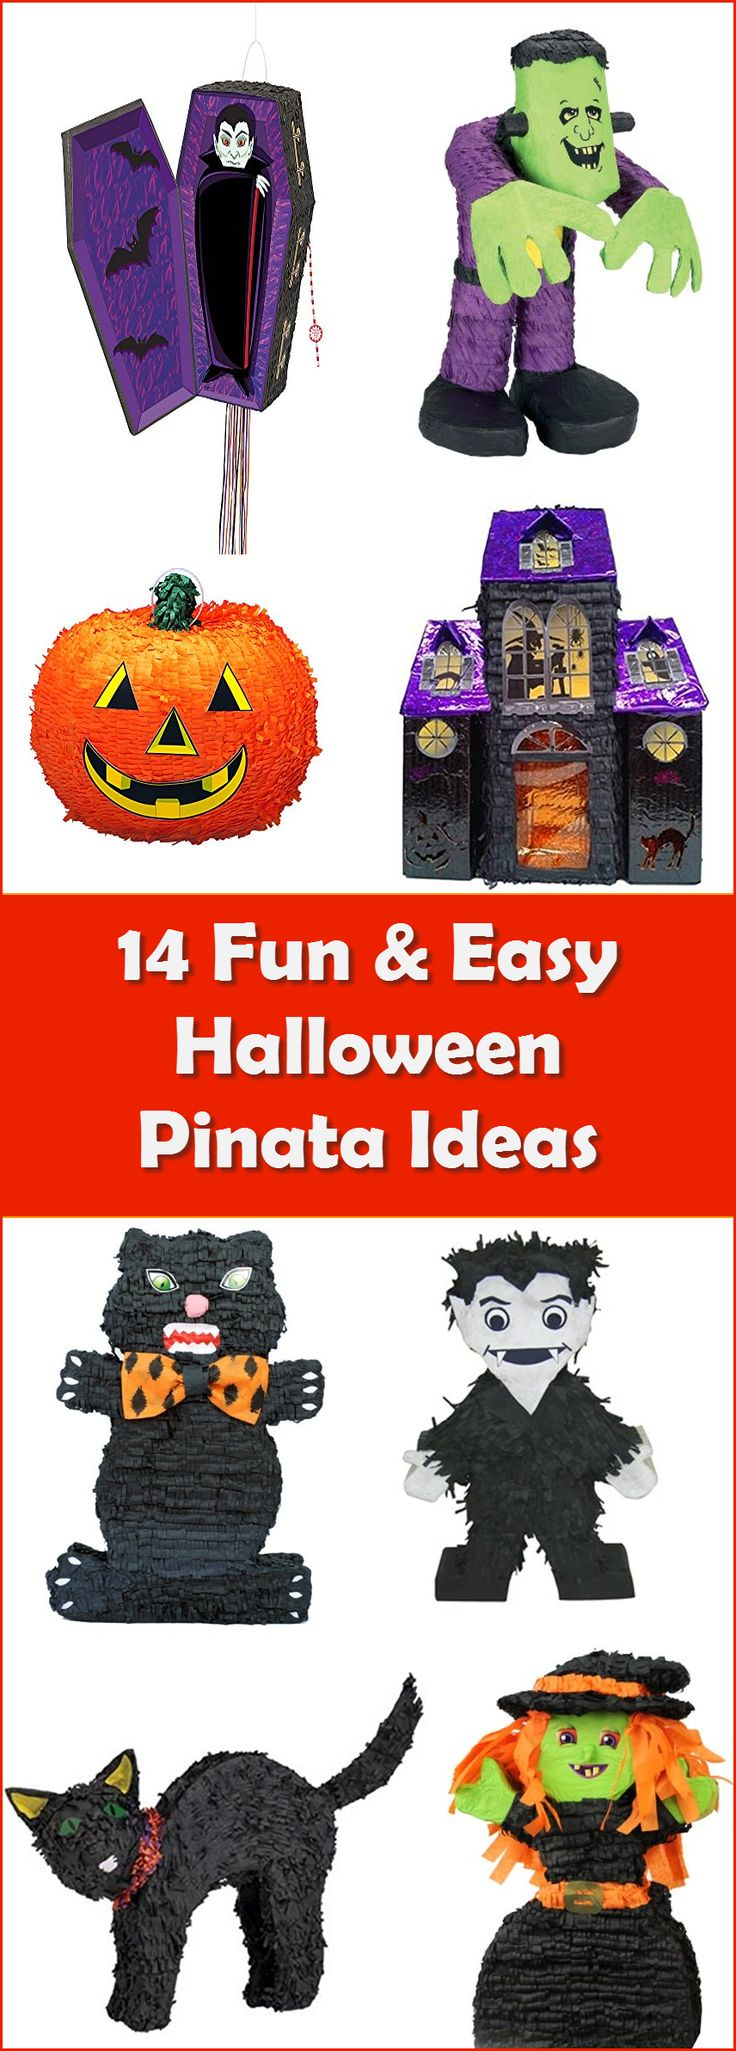 Best 25+ Pinata ideas ideas on Pinterest | Make pinata, Watermelon ...